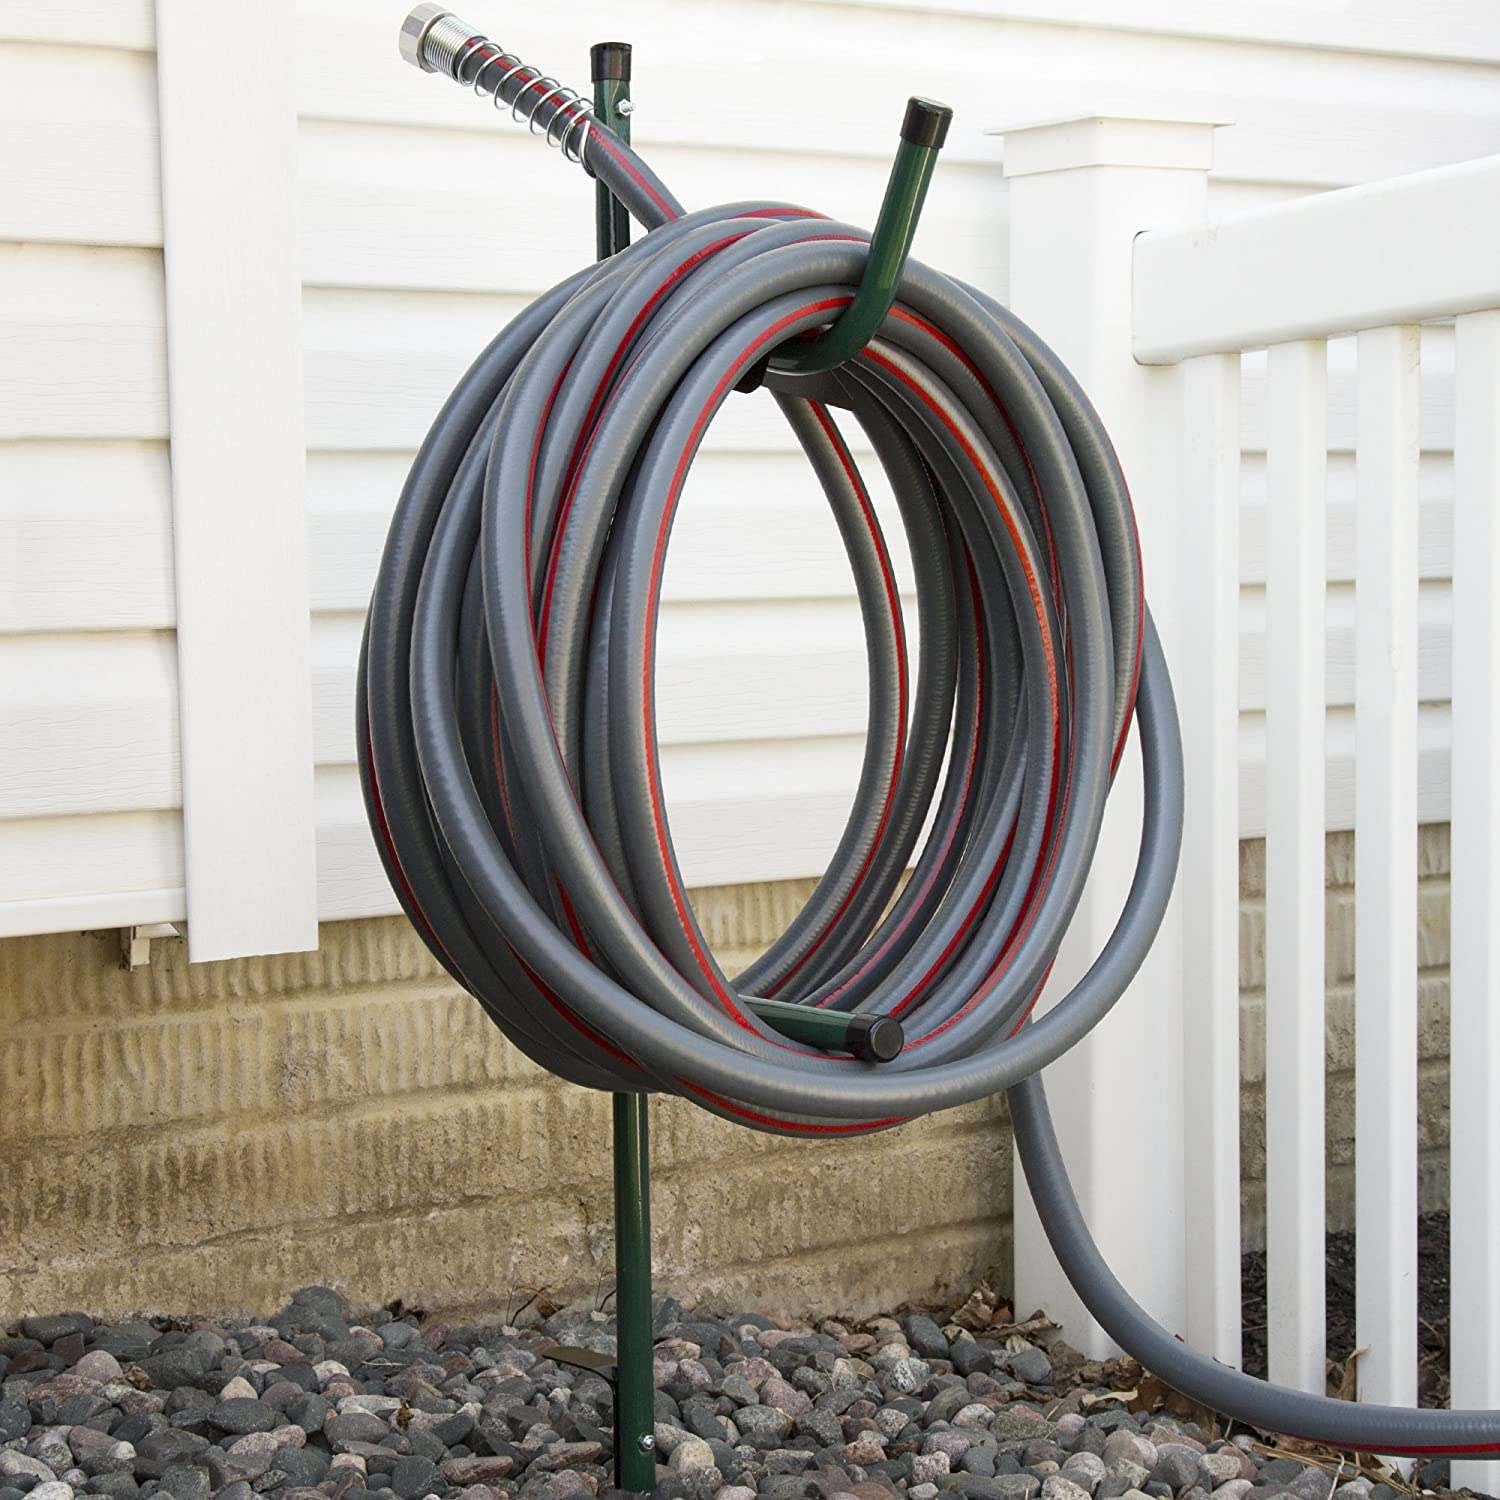 Merveilleux Amazon.com : Stalwart In The Ground Hose Management Bracket 50u0027 Capacity :  Garden U0026 Outdoor